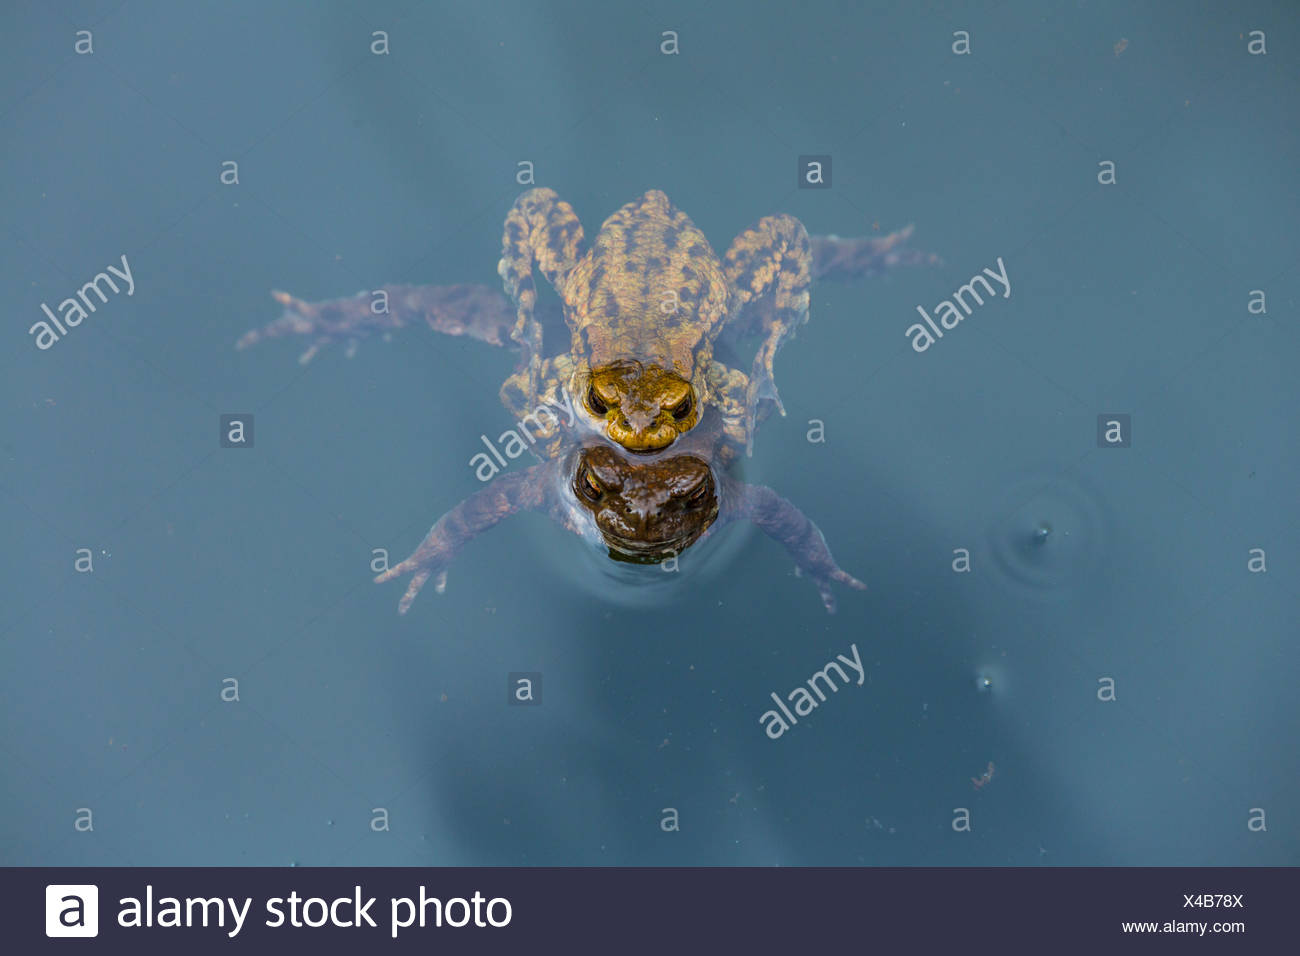 Common toads mating n water - Stock Image